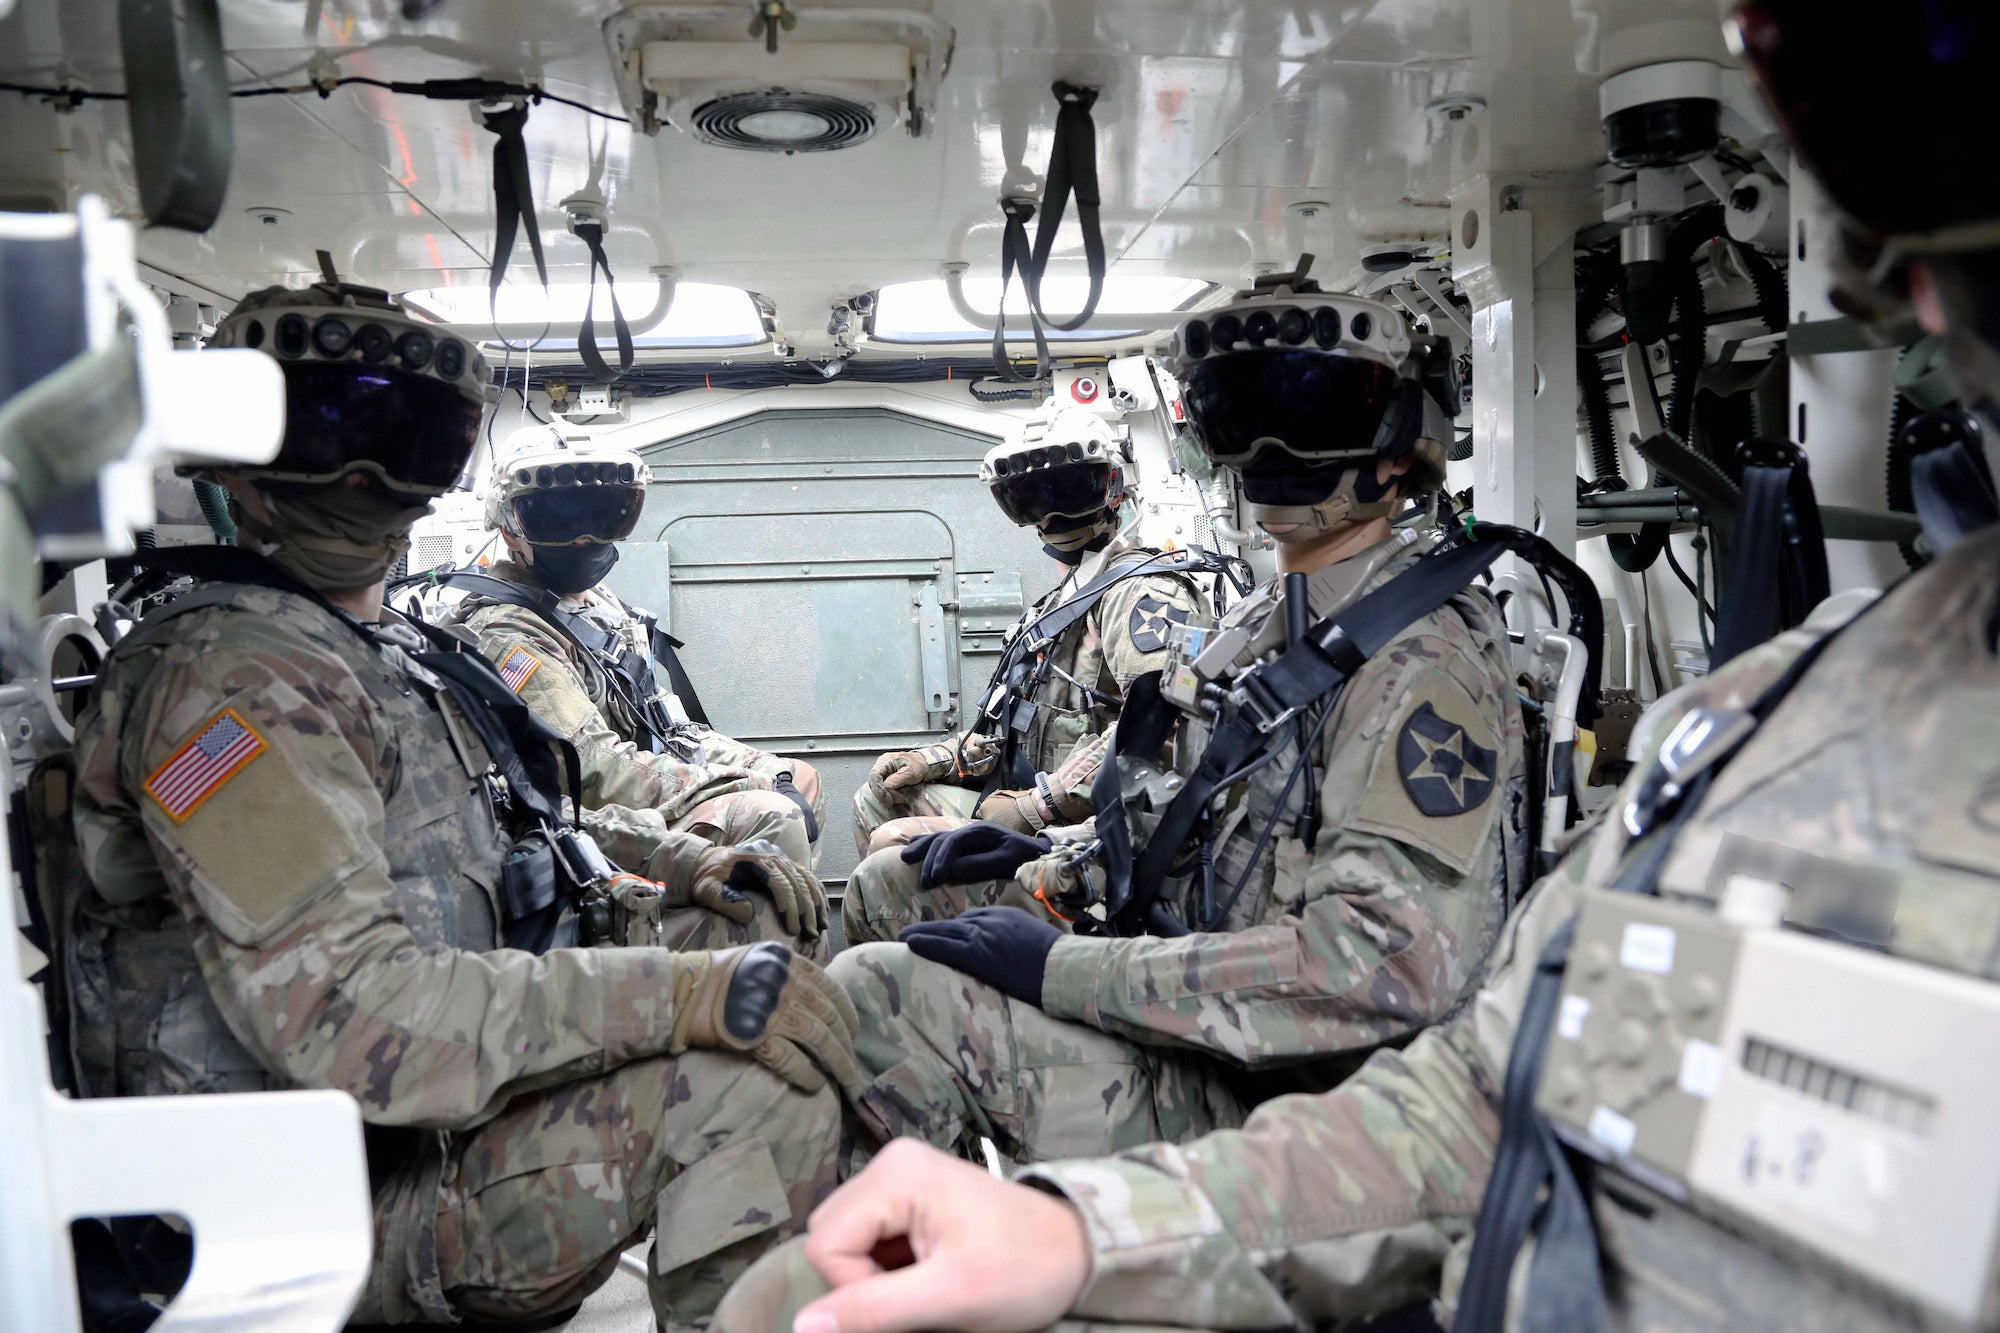 Soldiers wearing augmented reality headsets while sitting in a vehicle.